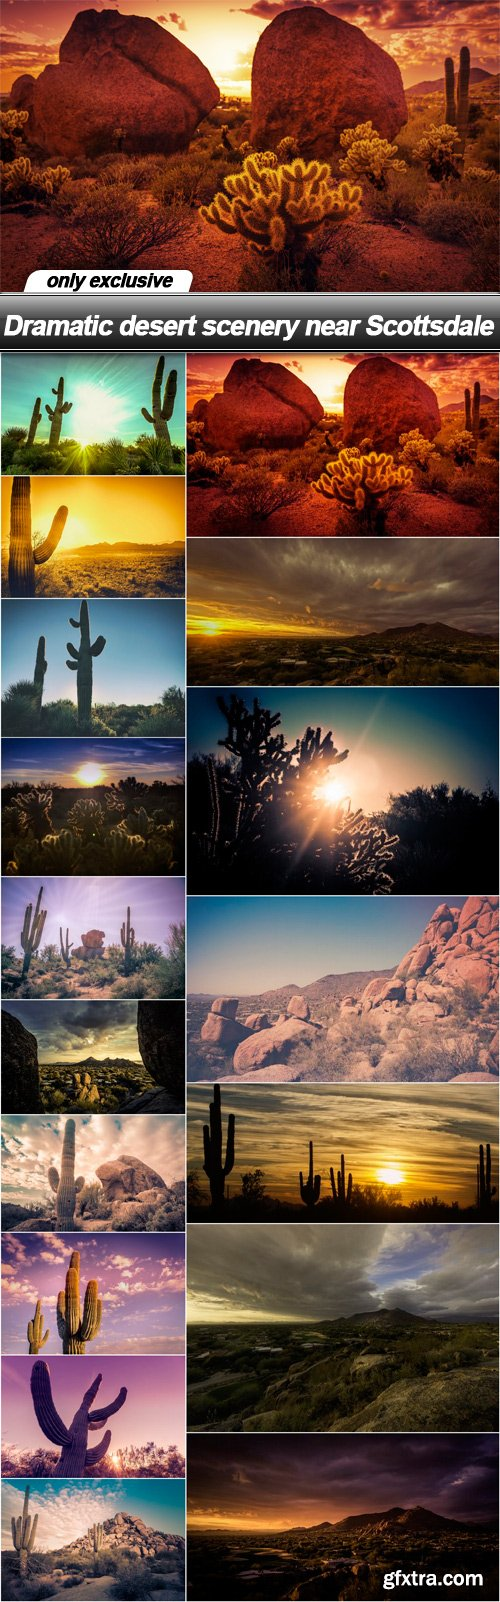 Dramatic desert scenery near Scottsdale - 17 UHQ JPEG